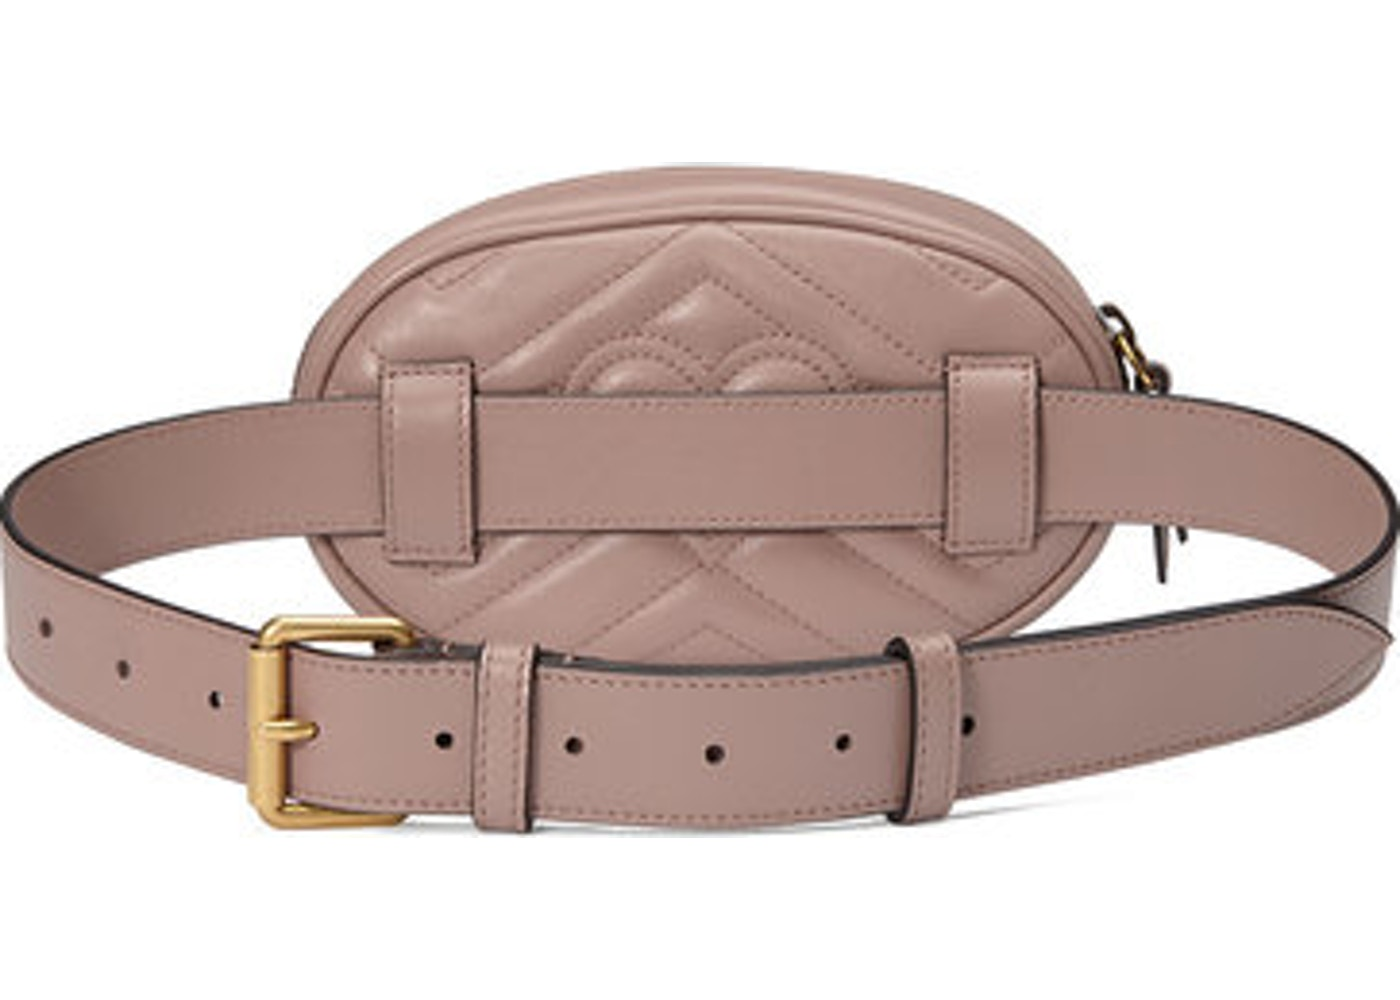 0970b1431f7 Gucci Marmont Belt Bag Matelasse GG Dusty Pink